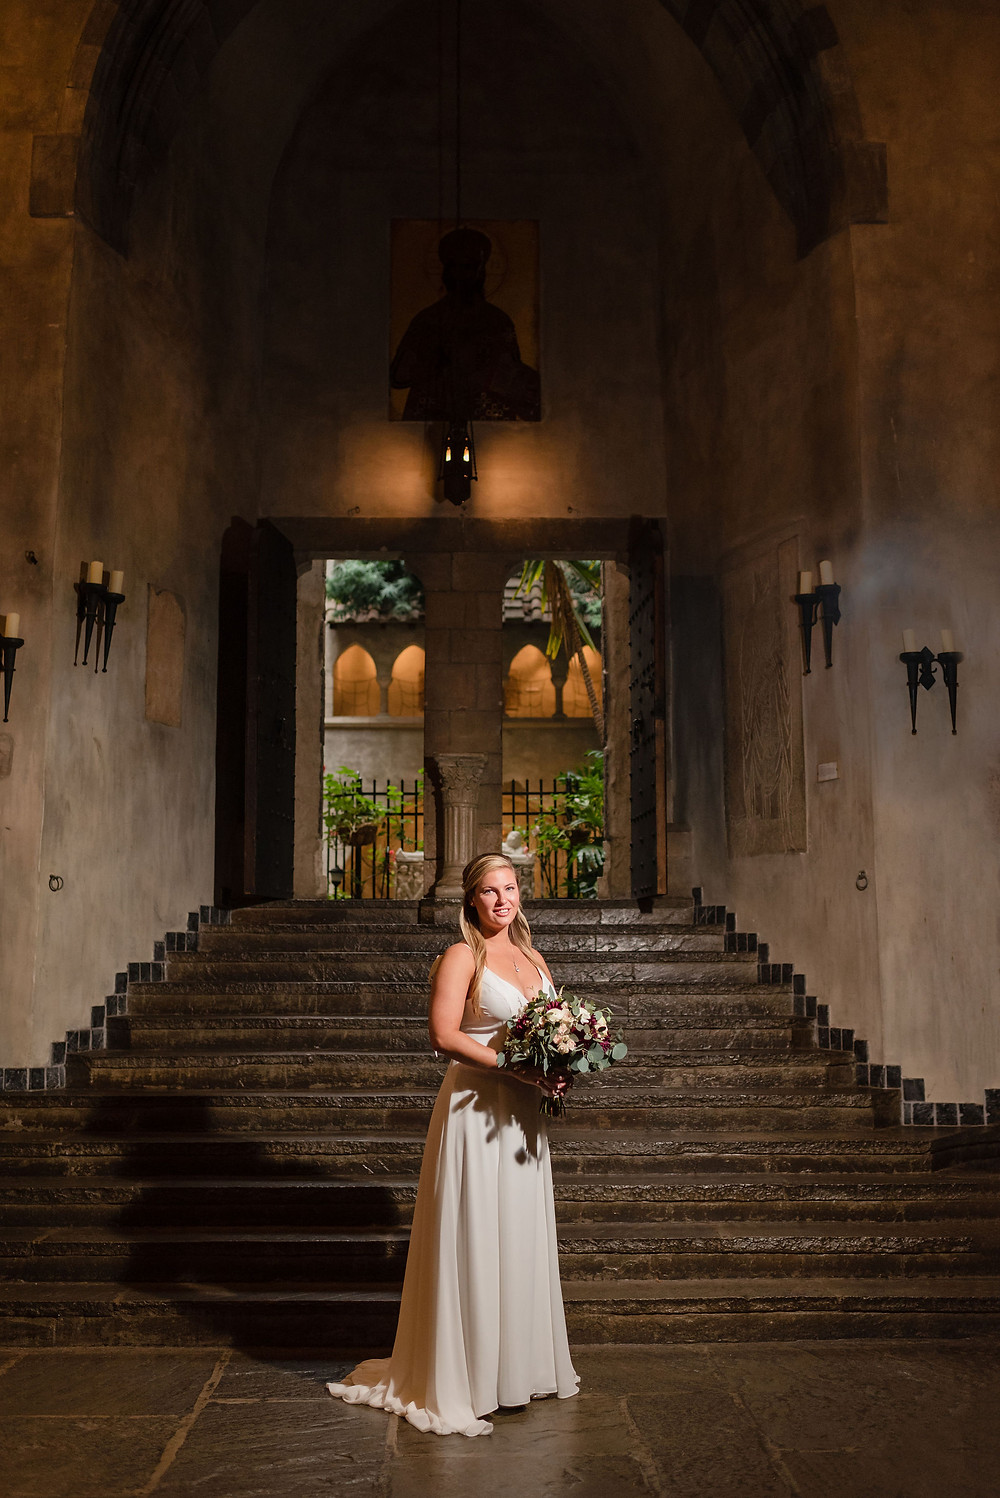 bride posing in front of stairs in the great hall. through the doors behind her is where the courtyard is